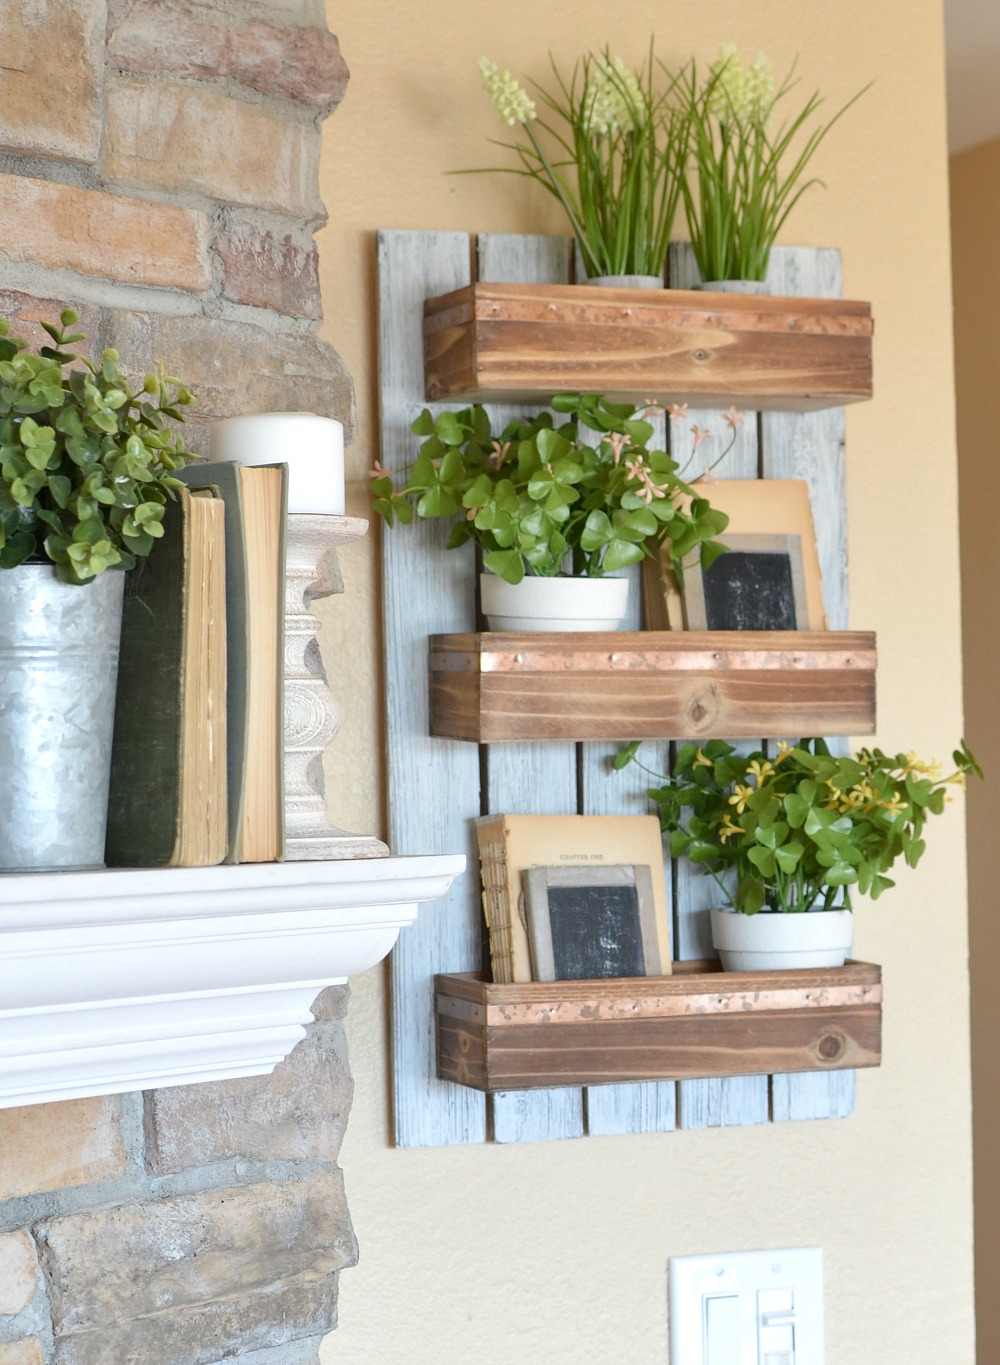 DIY Wooden Wall Planter. Farmhouse decor project great for spring.